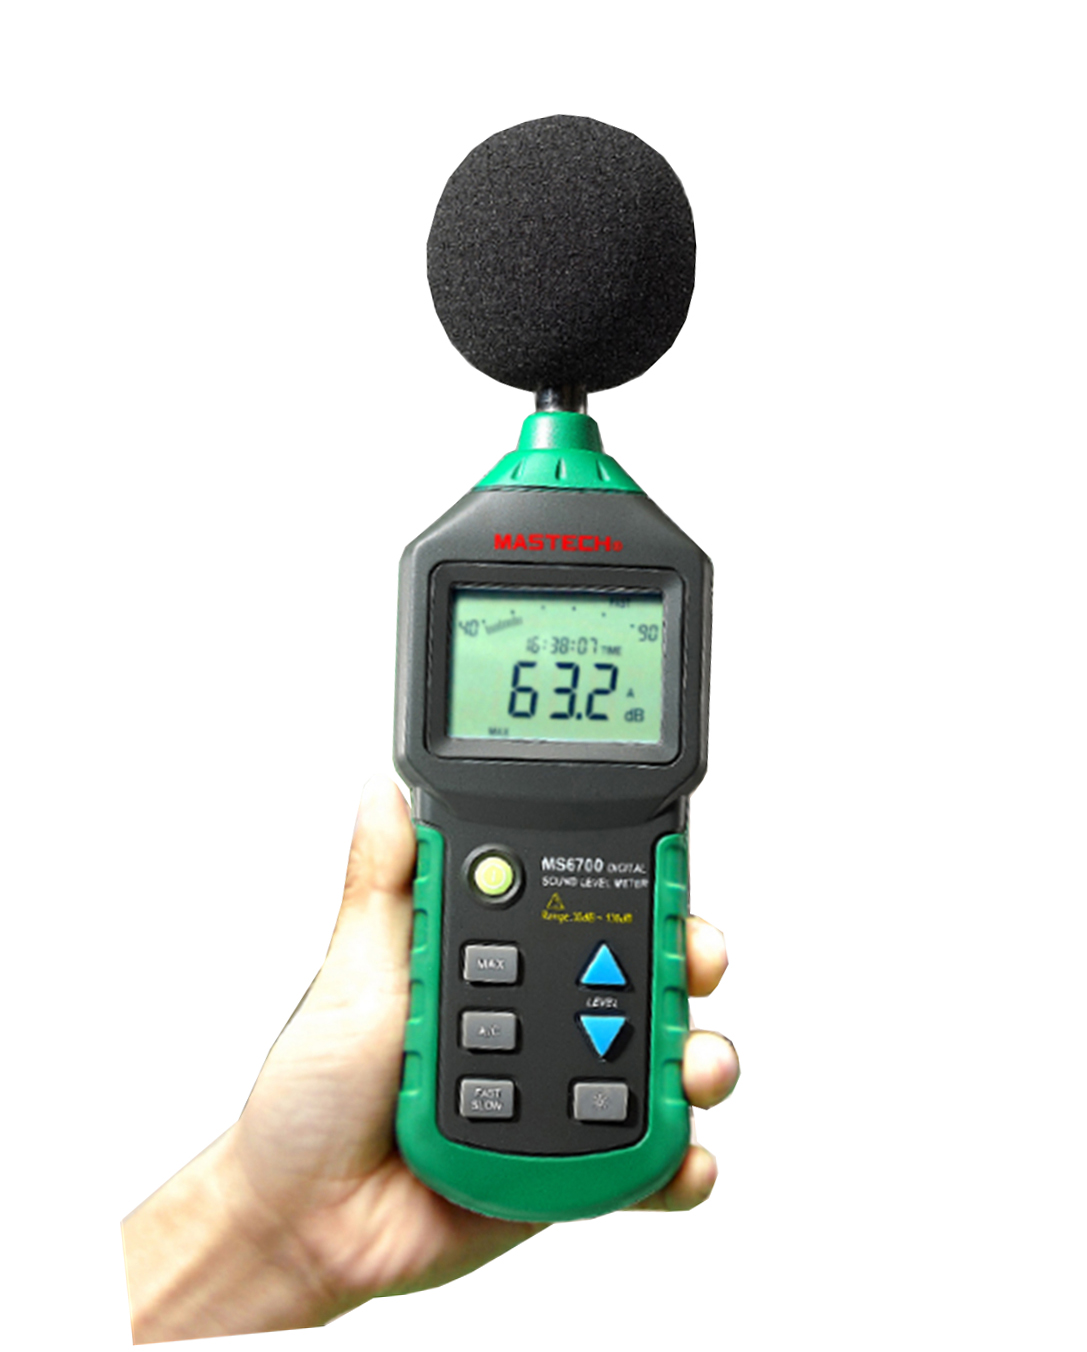 MASTECH MS6701 Autoranging Digital Sound Level Meter Decibel Tester 30dB to 130dB with RS232 Interface and Software With the BOX tm 102 autoranging sound level meter